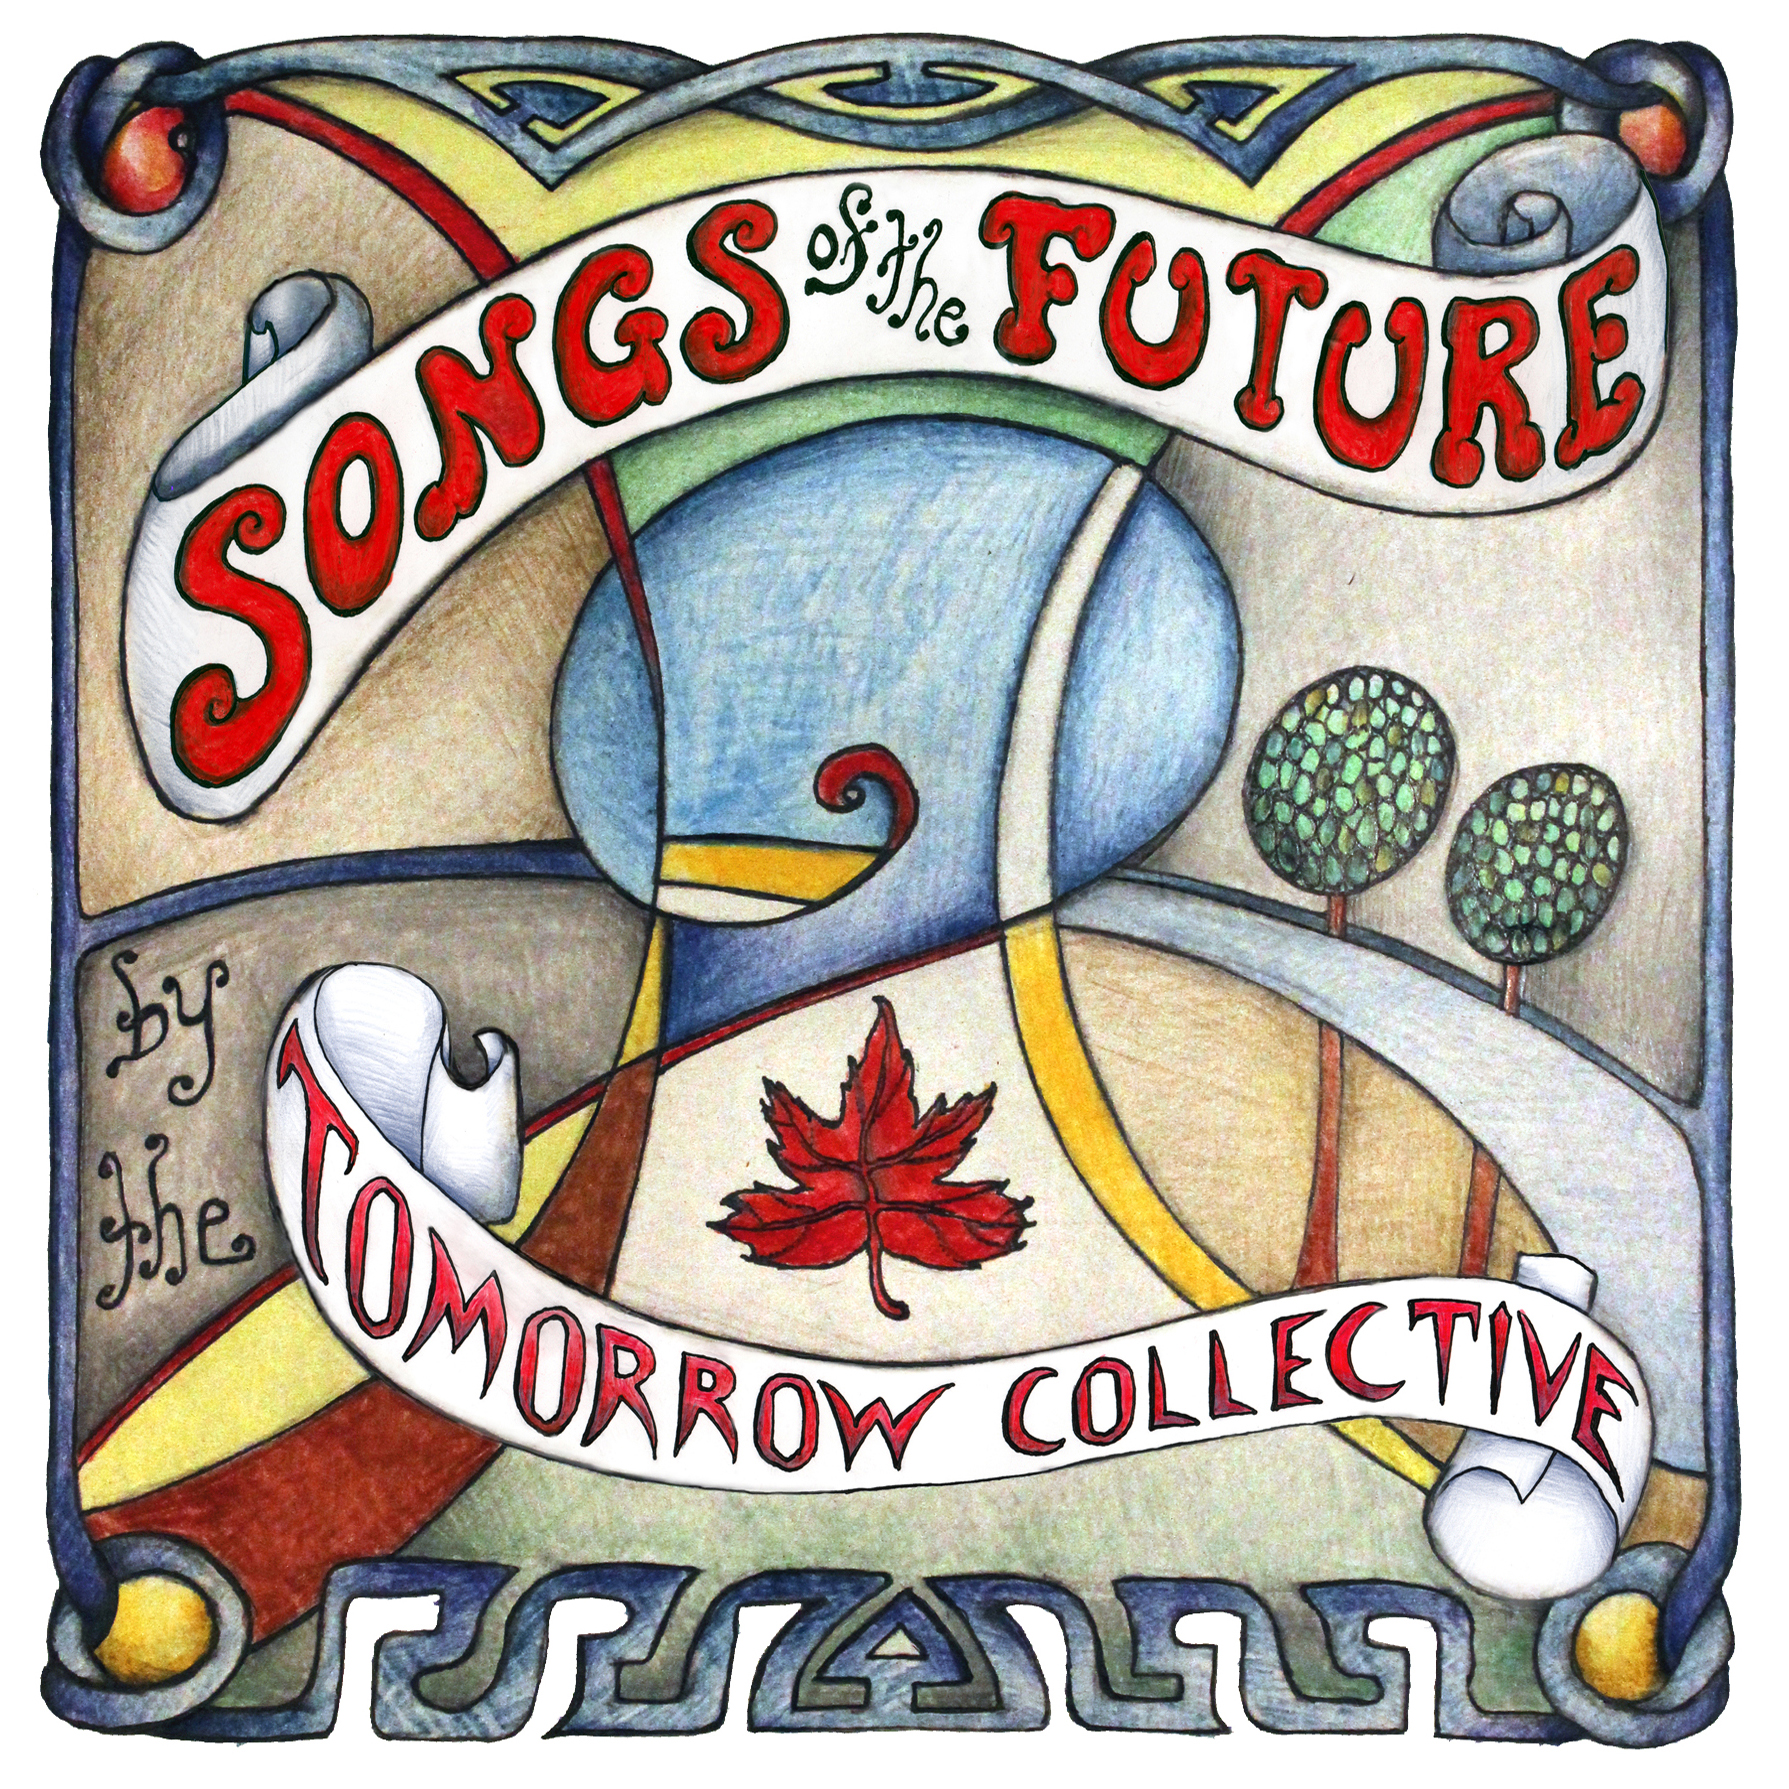 Songs Of The Future / Tomorrow Collective